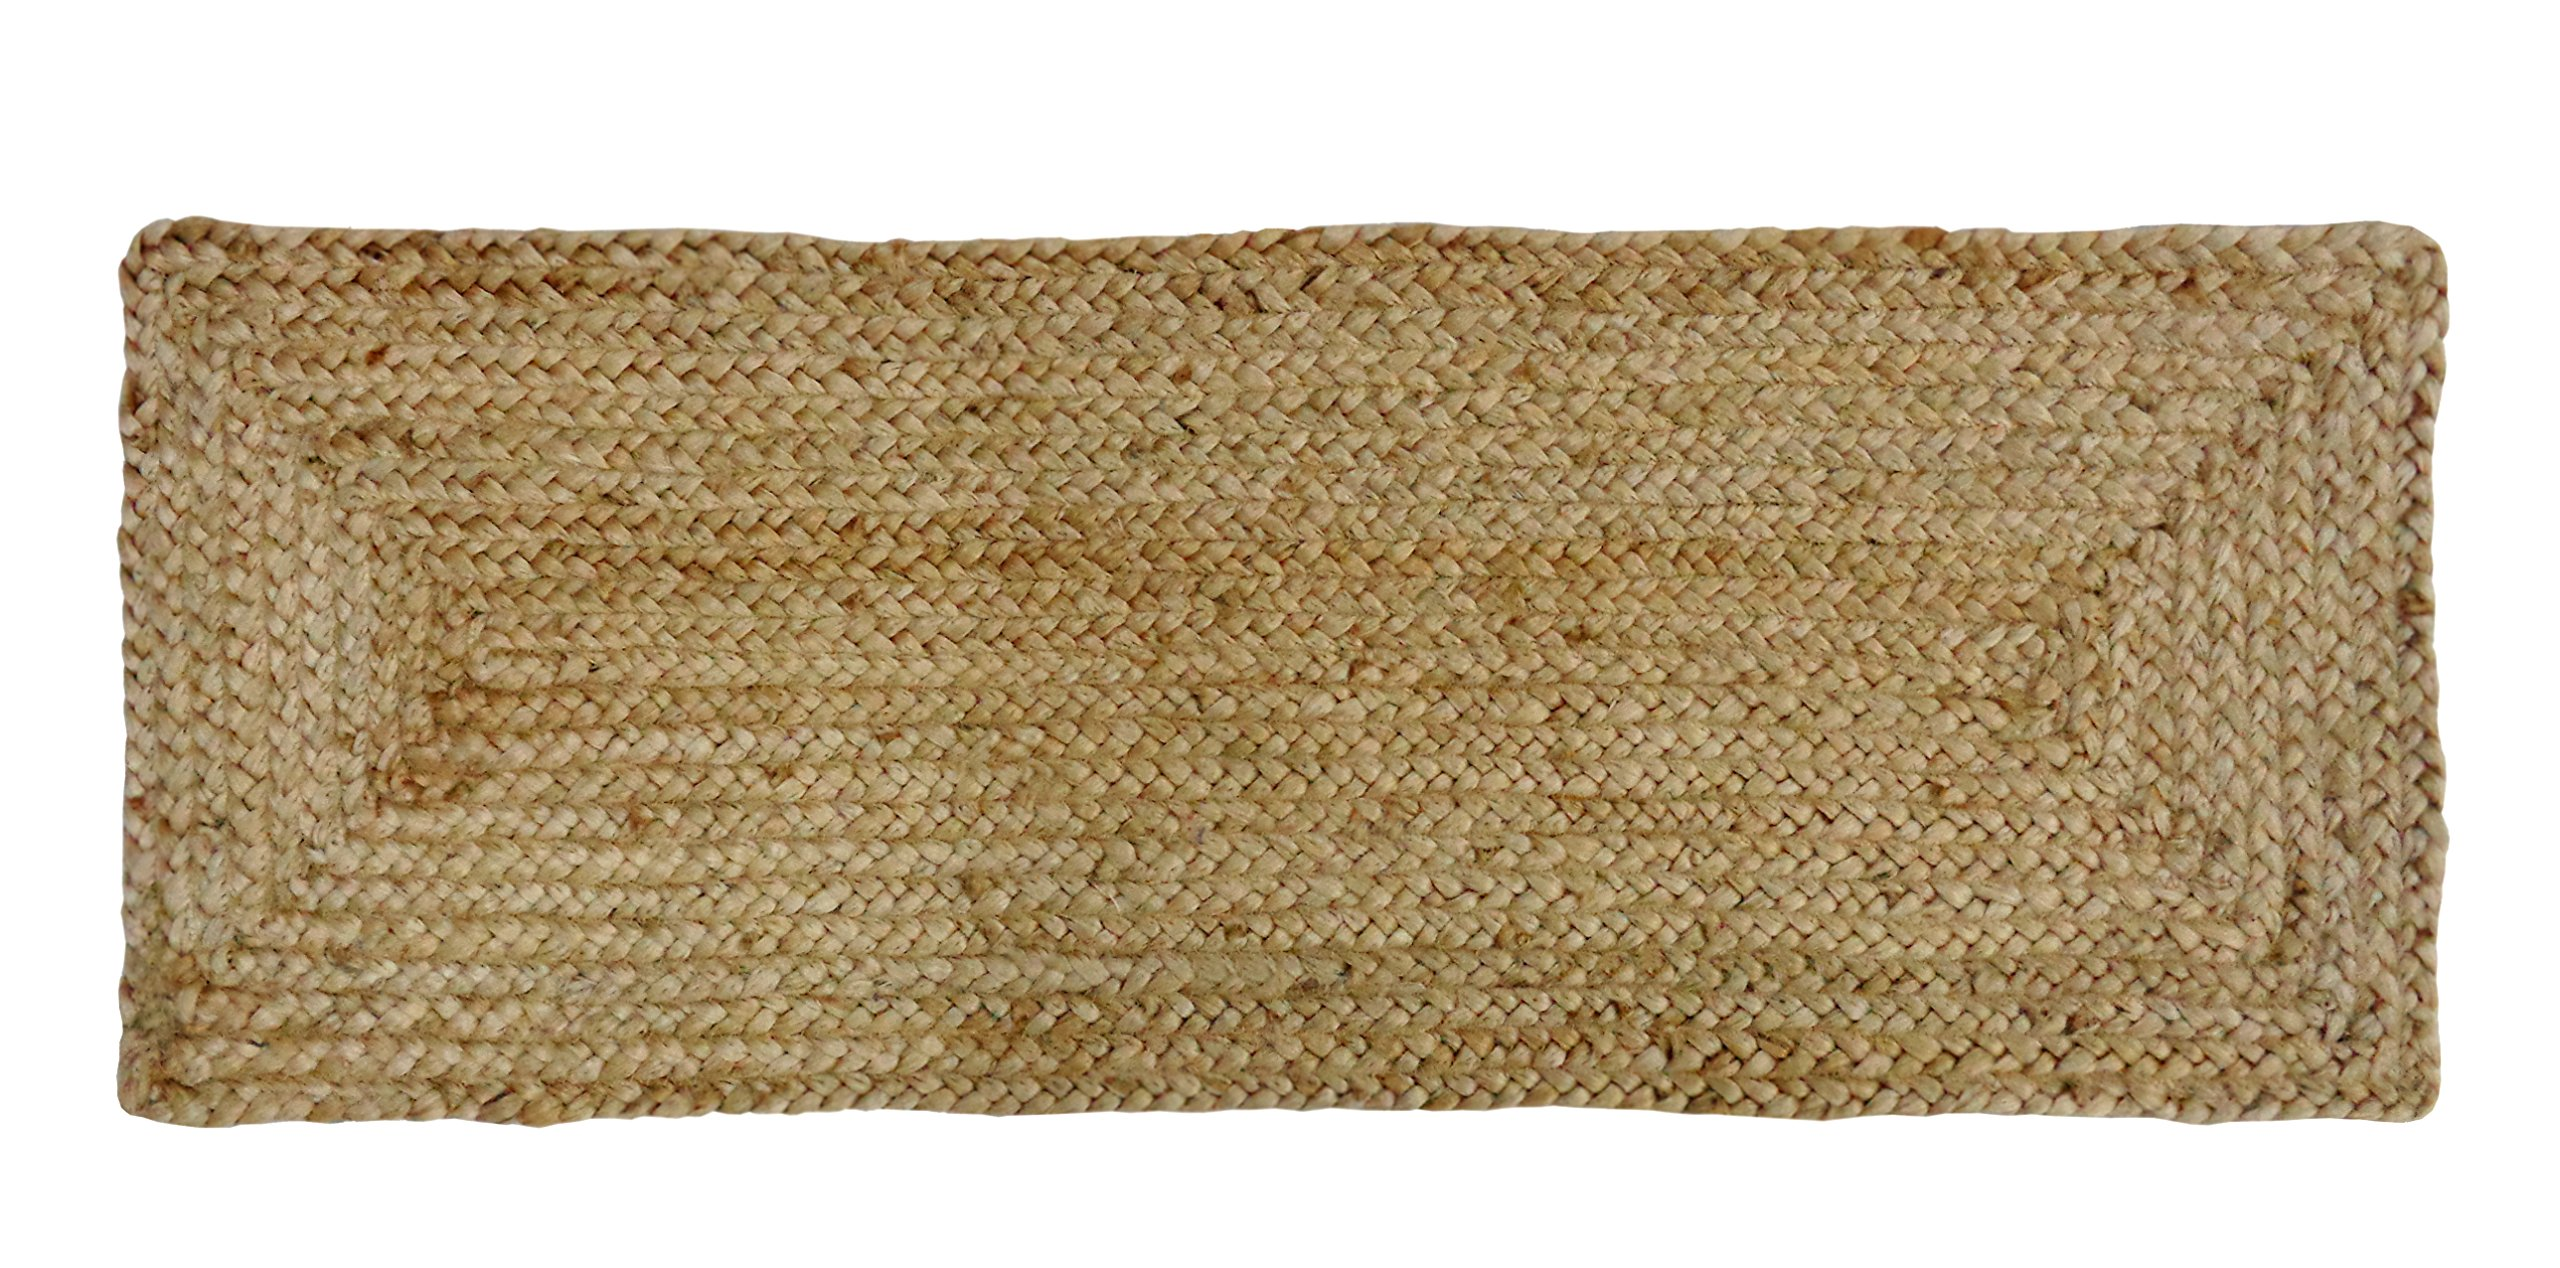 Cotton Craft - 100% Jute- Reversible Jute Braided Table Runner - Natural - 13 x 36 Inch - Hand Woven Rectangular Plain - Spot Clean Only.